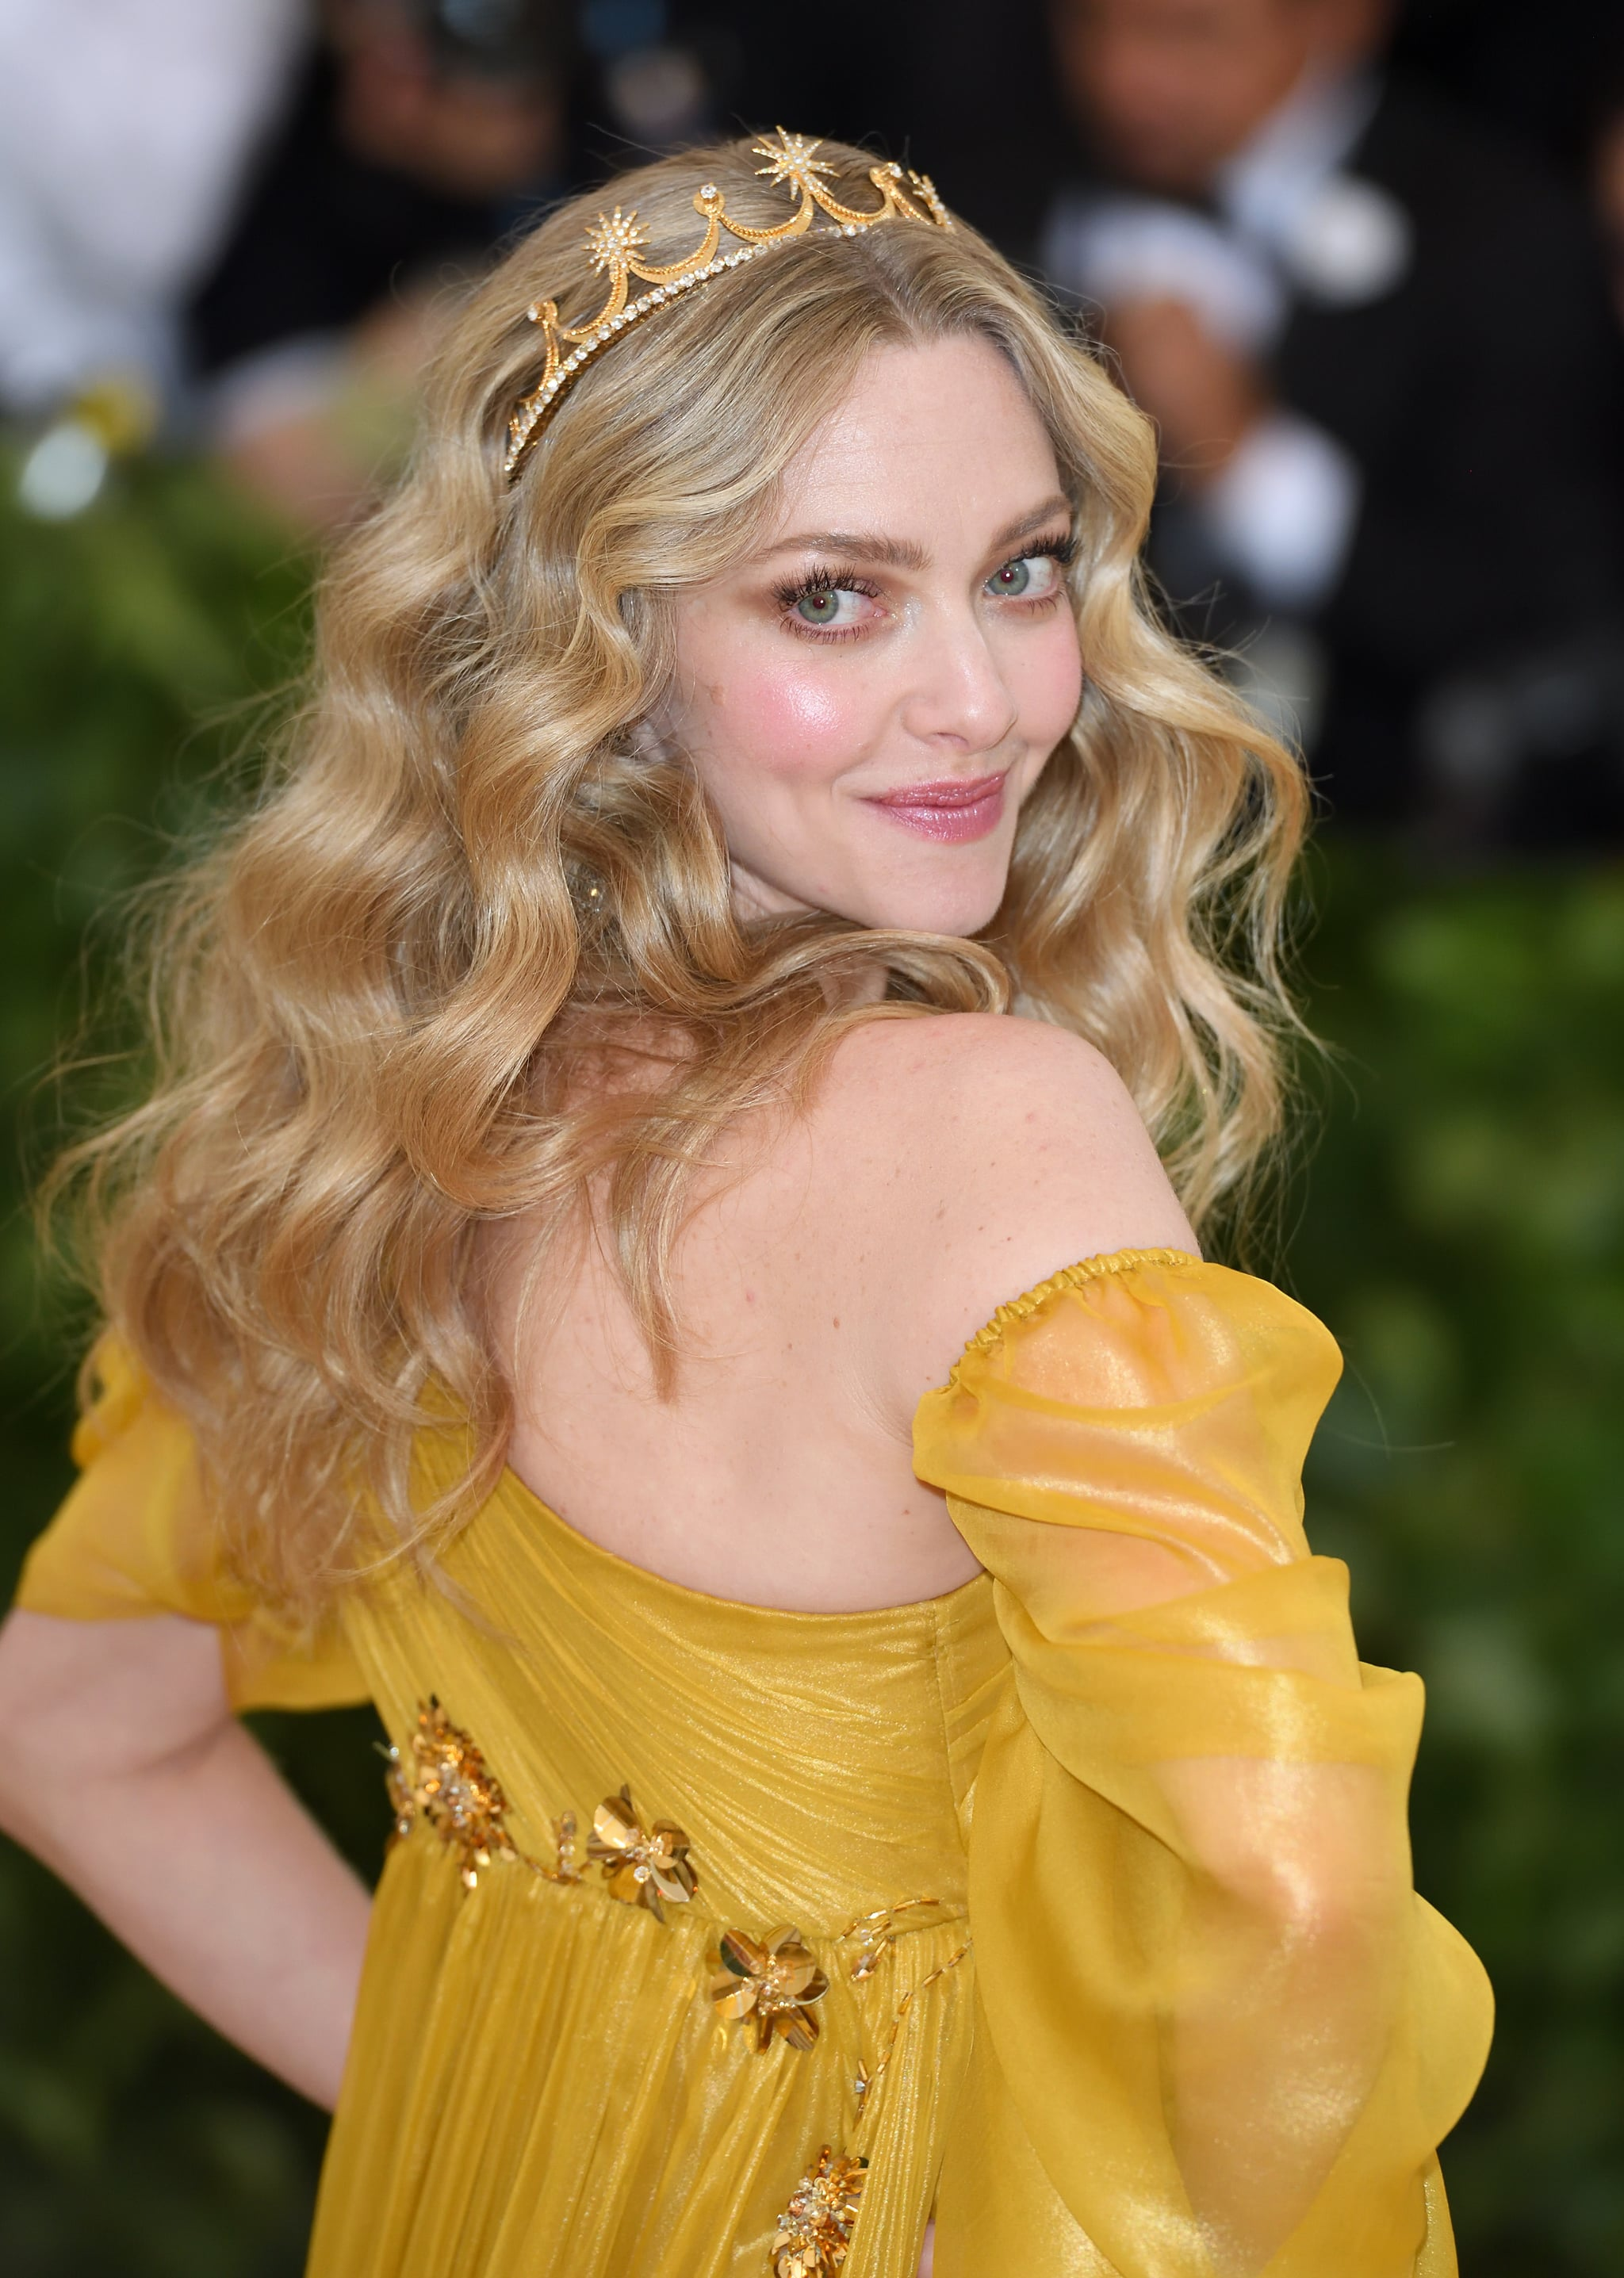 NEW YORK, NY - MAY 07:  Amanda Seyfield attends the Heavenly Bodies: Fashion & The Catholic Imagination Costume Institute Gala at Metropolitan Museum of Art on May 7, 2018 in New York City.  (Photo by Karwai Tang/Getty Images)